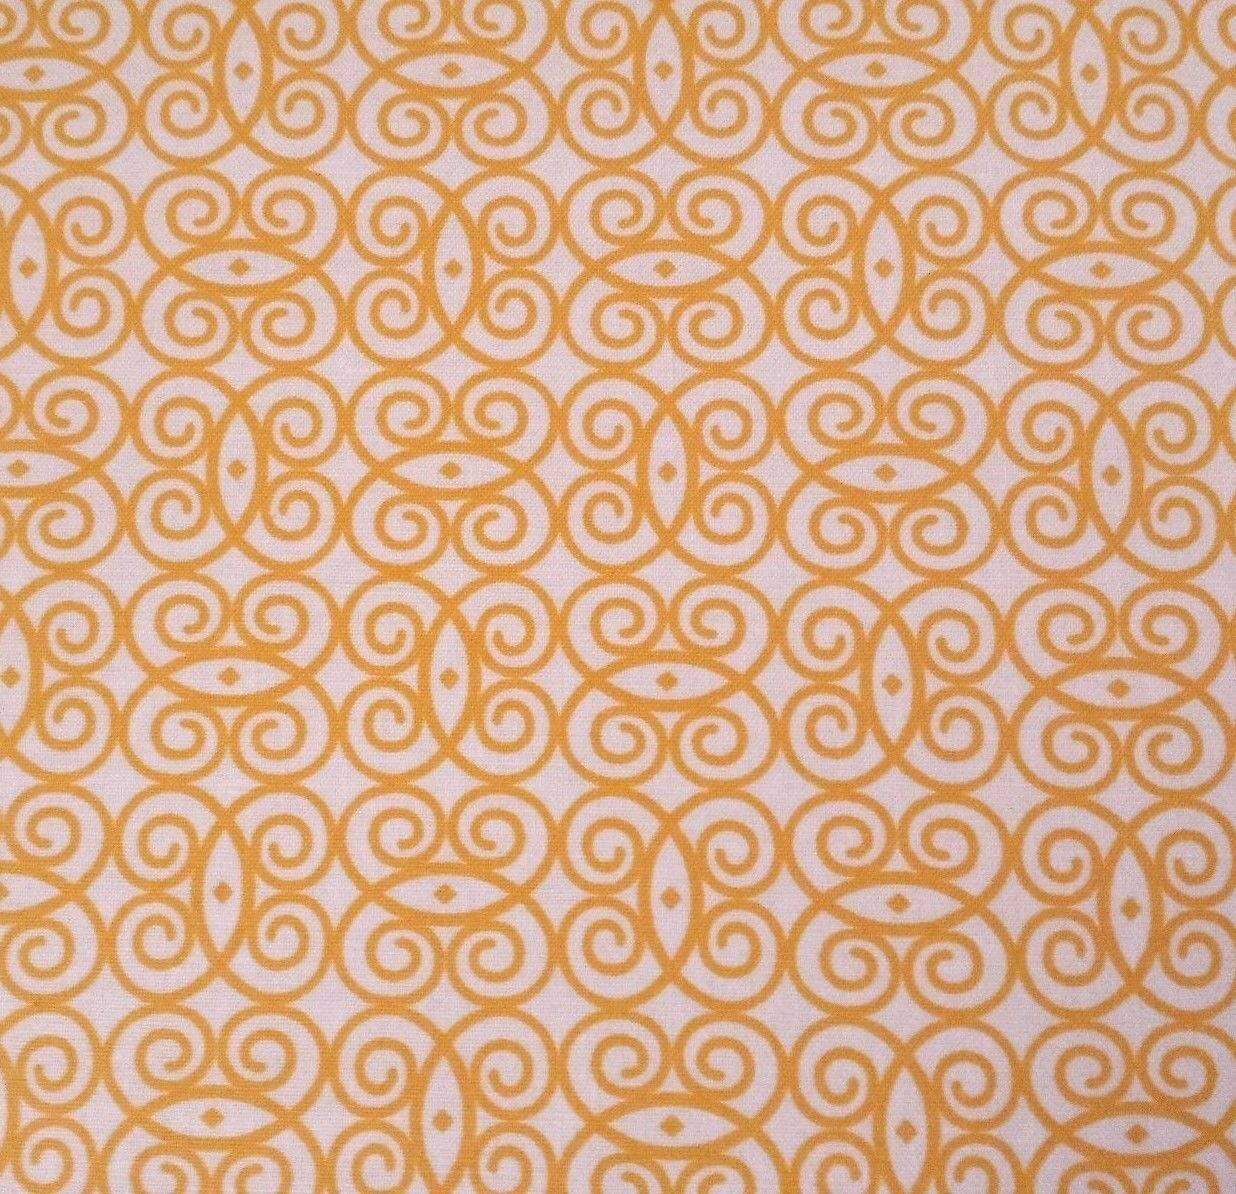 Sassy by Studio 8 Quilting Treasures BTY Gold Yellow White ... : studio 8 quilting treasures - Adamdwight.com